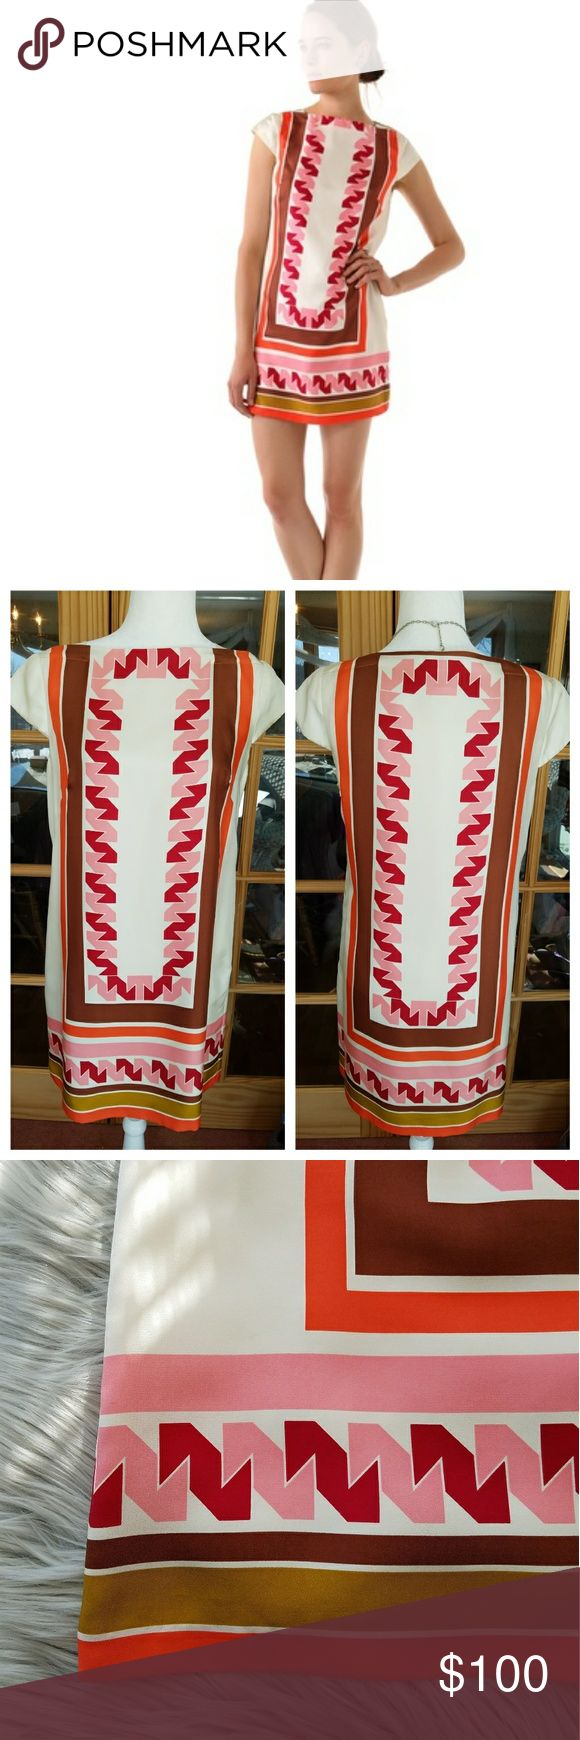 "🎉HP 2-4🎉Milly NY 100% Silk Print Shift Dress This is an absolutely gorgeous Milly of New York shift dress!. This print is a beautiful Aztec-like design with a lovely palette of pink, red, tangerine, warm brown, and a golden olive shade. This would be a lovely special occasion dress!. And would be a beautiful 3 season dress for some! Also has side zip, cap sleeves, and completely lined. Bust is approximately 18.5"", Length is 33.5"". In excellent gently used condition. Size 8. Milly of New…"